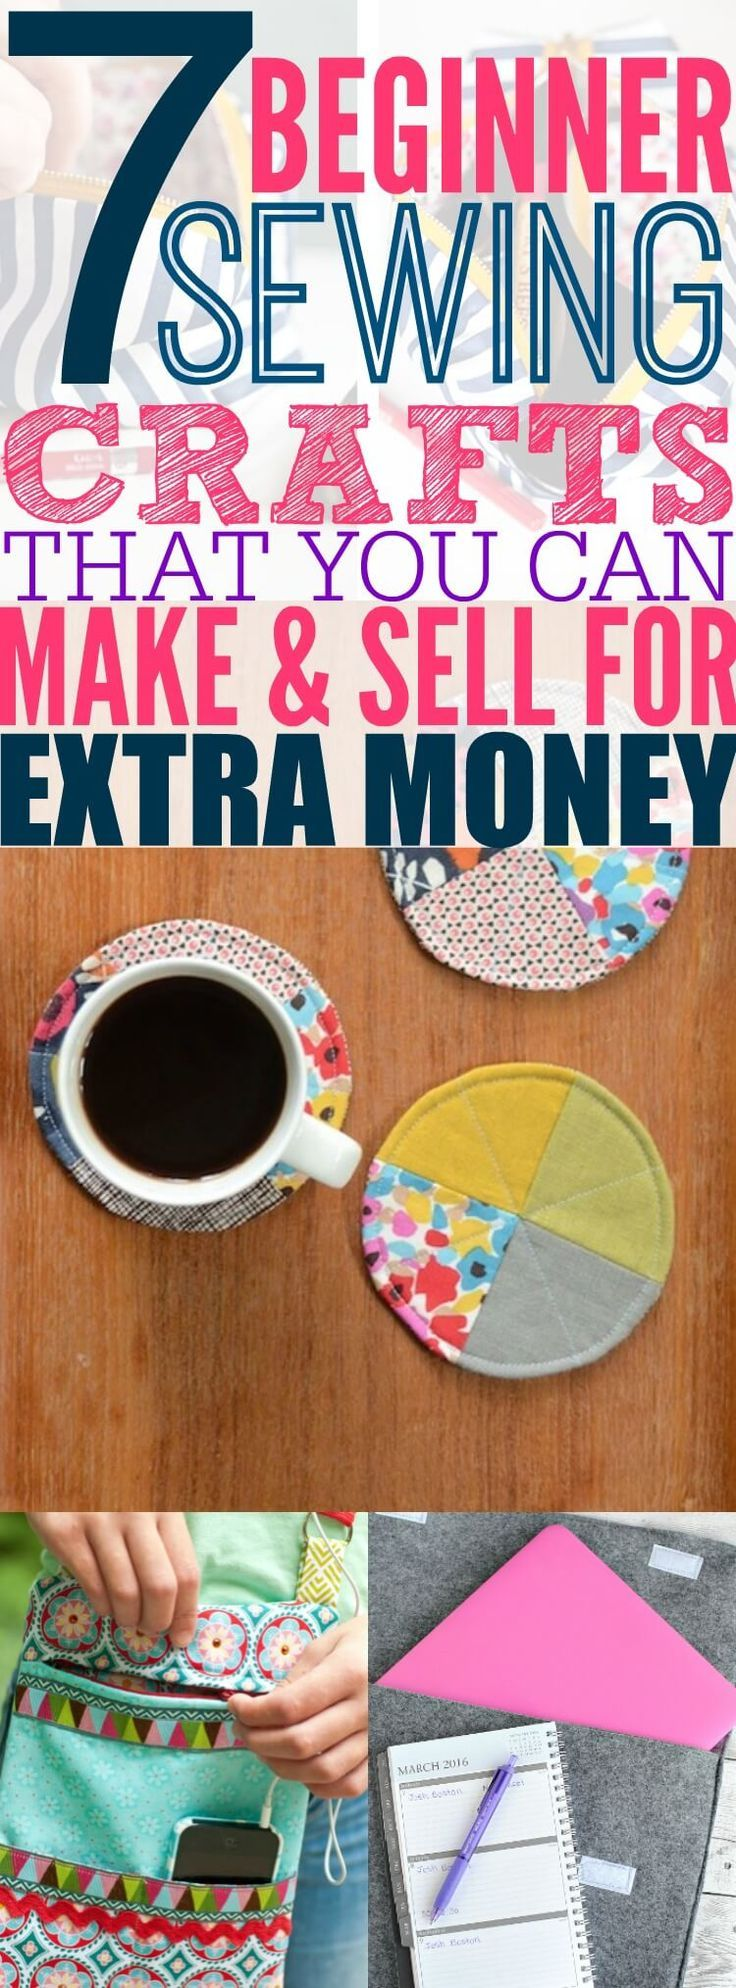 7 Sewing Crafts That Any Beginner Can Make and Sell #craftstosell